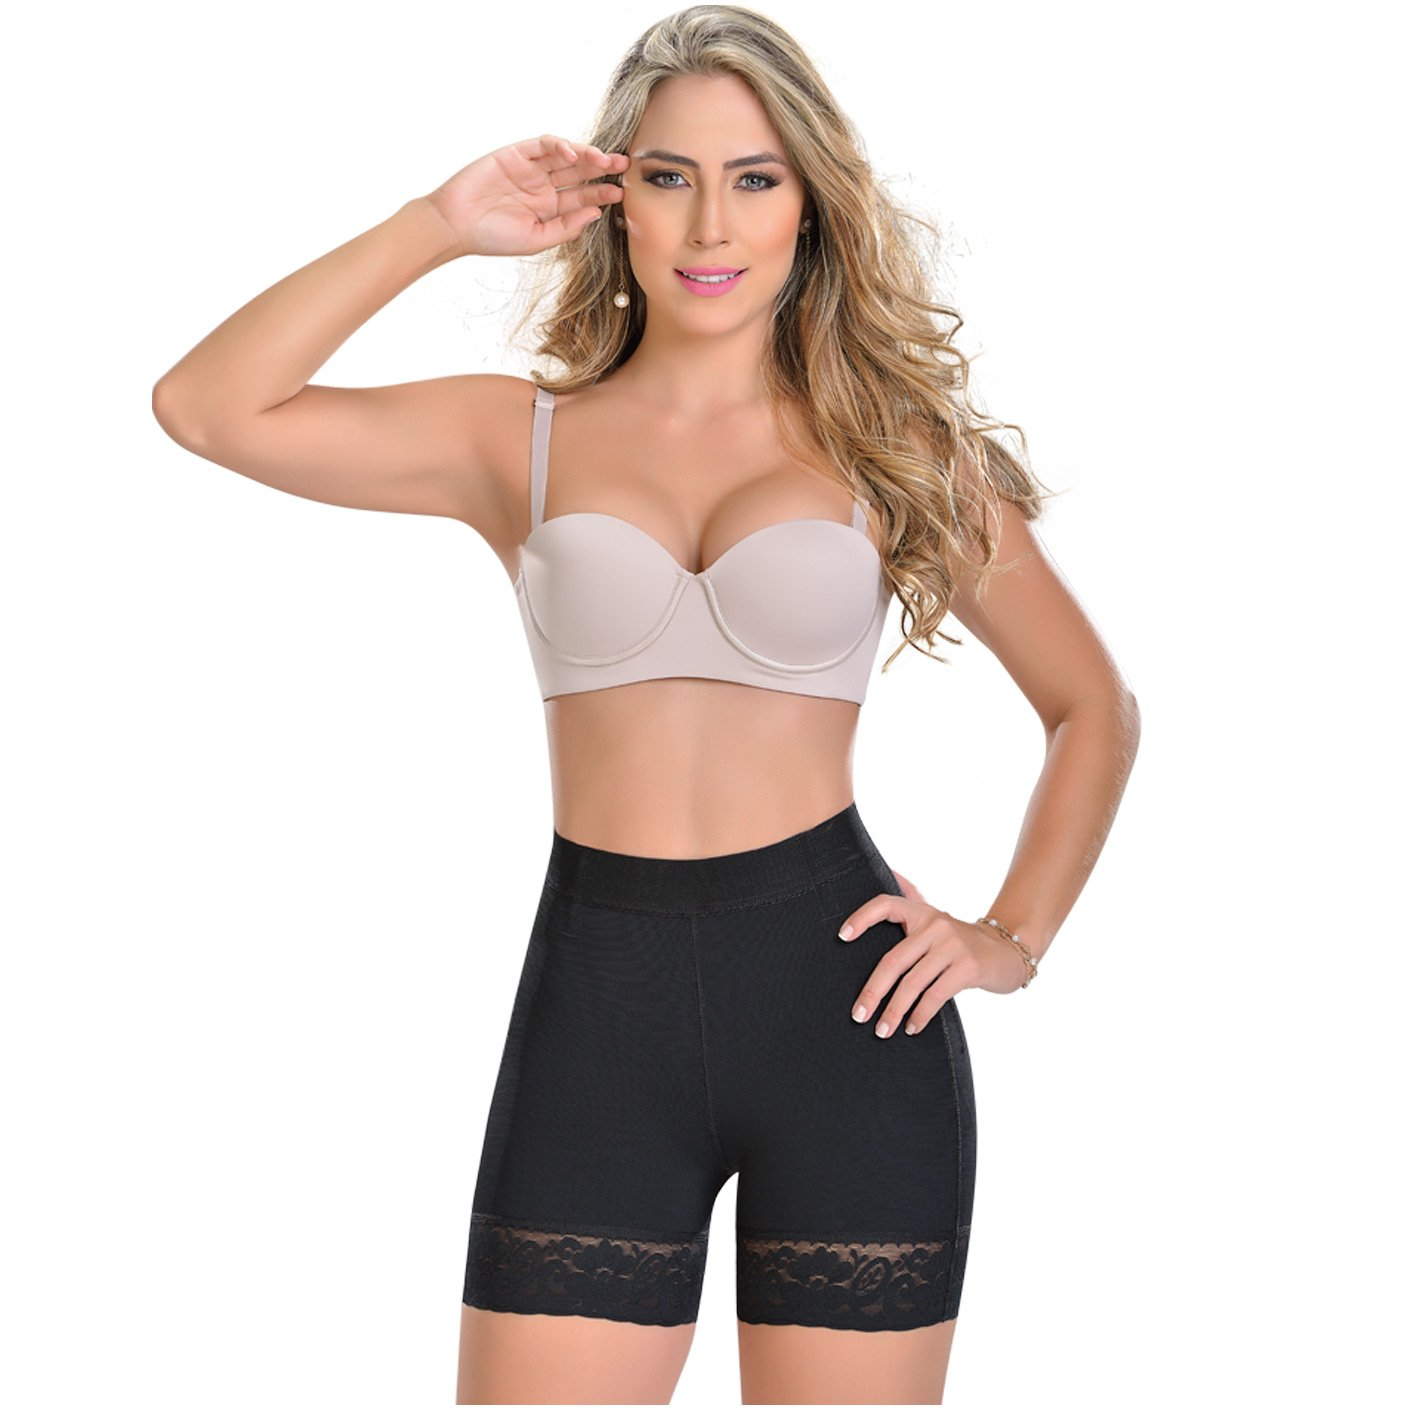 Butt Lifter High Waisted Shaping Shorts For W